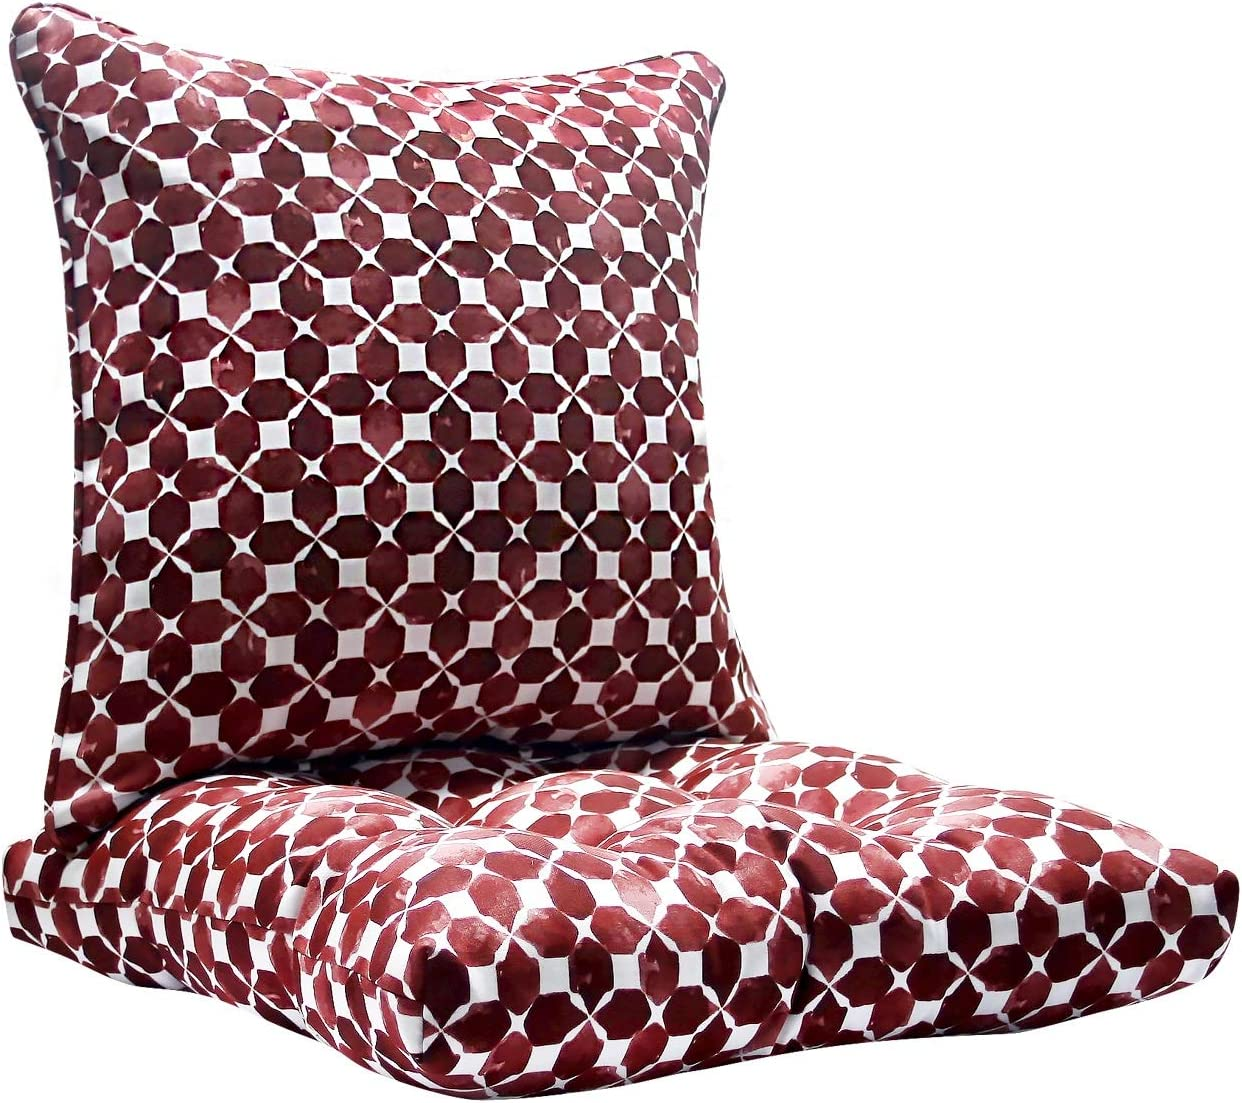 FBTS Prime Outdoor Chair Cushion and Outdoor Pillow Red 20x20 Inch Patio Decorative Set for Outdoor Patio Indoor Furniture Garden Home Office